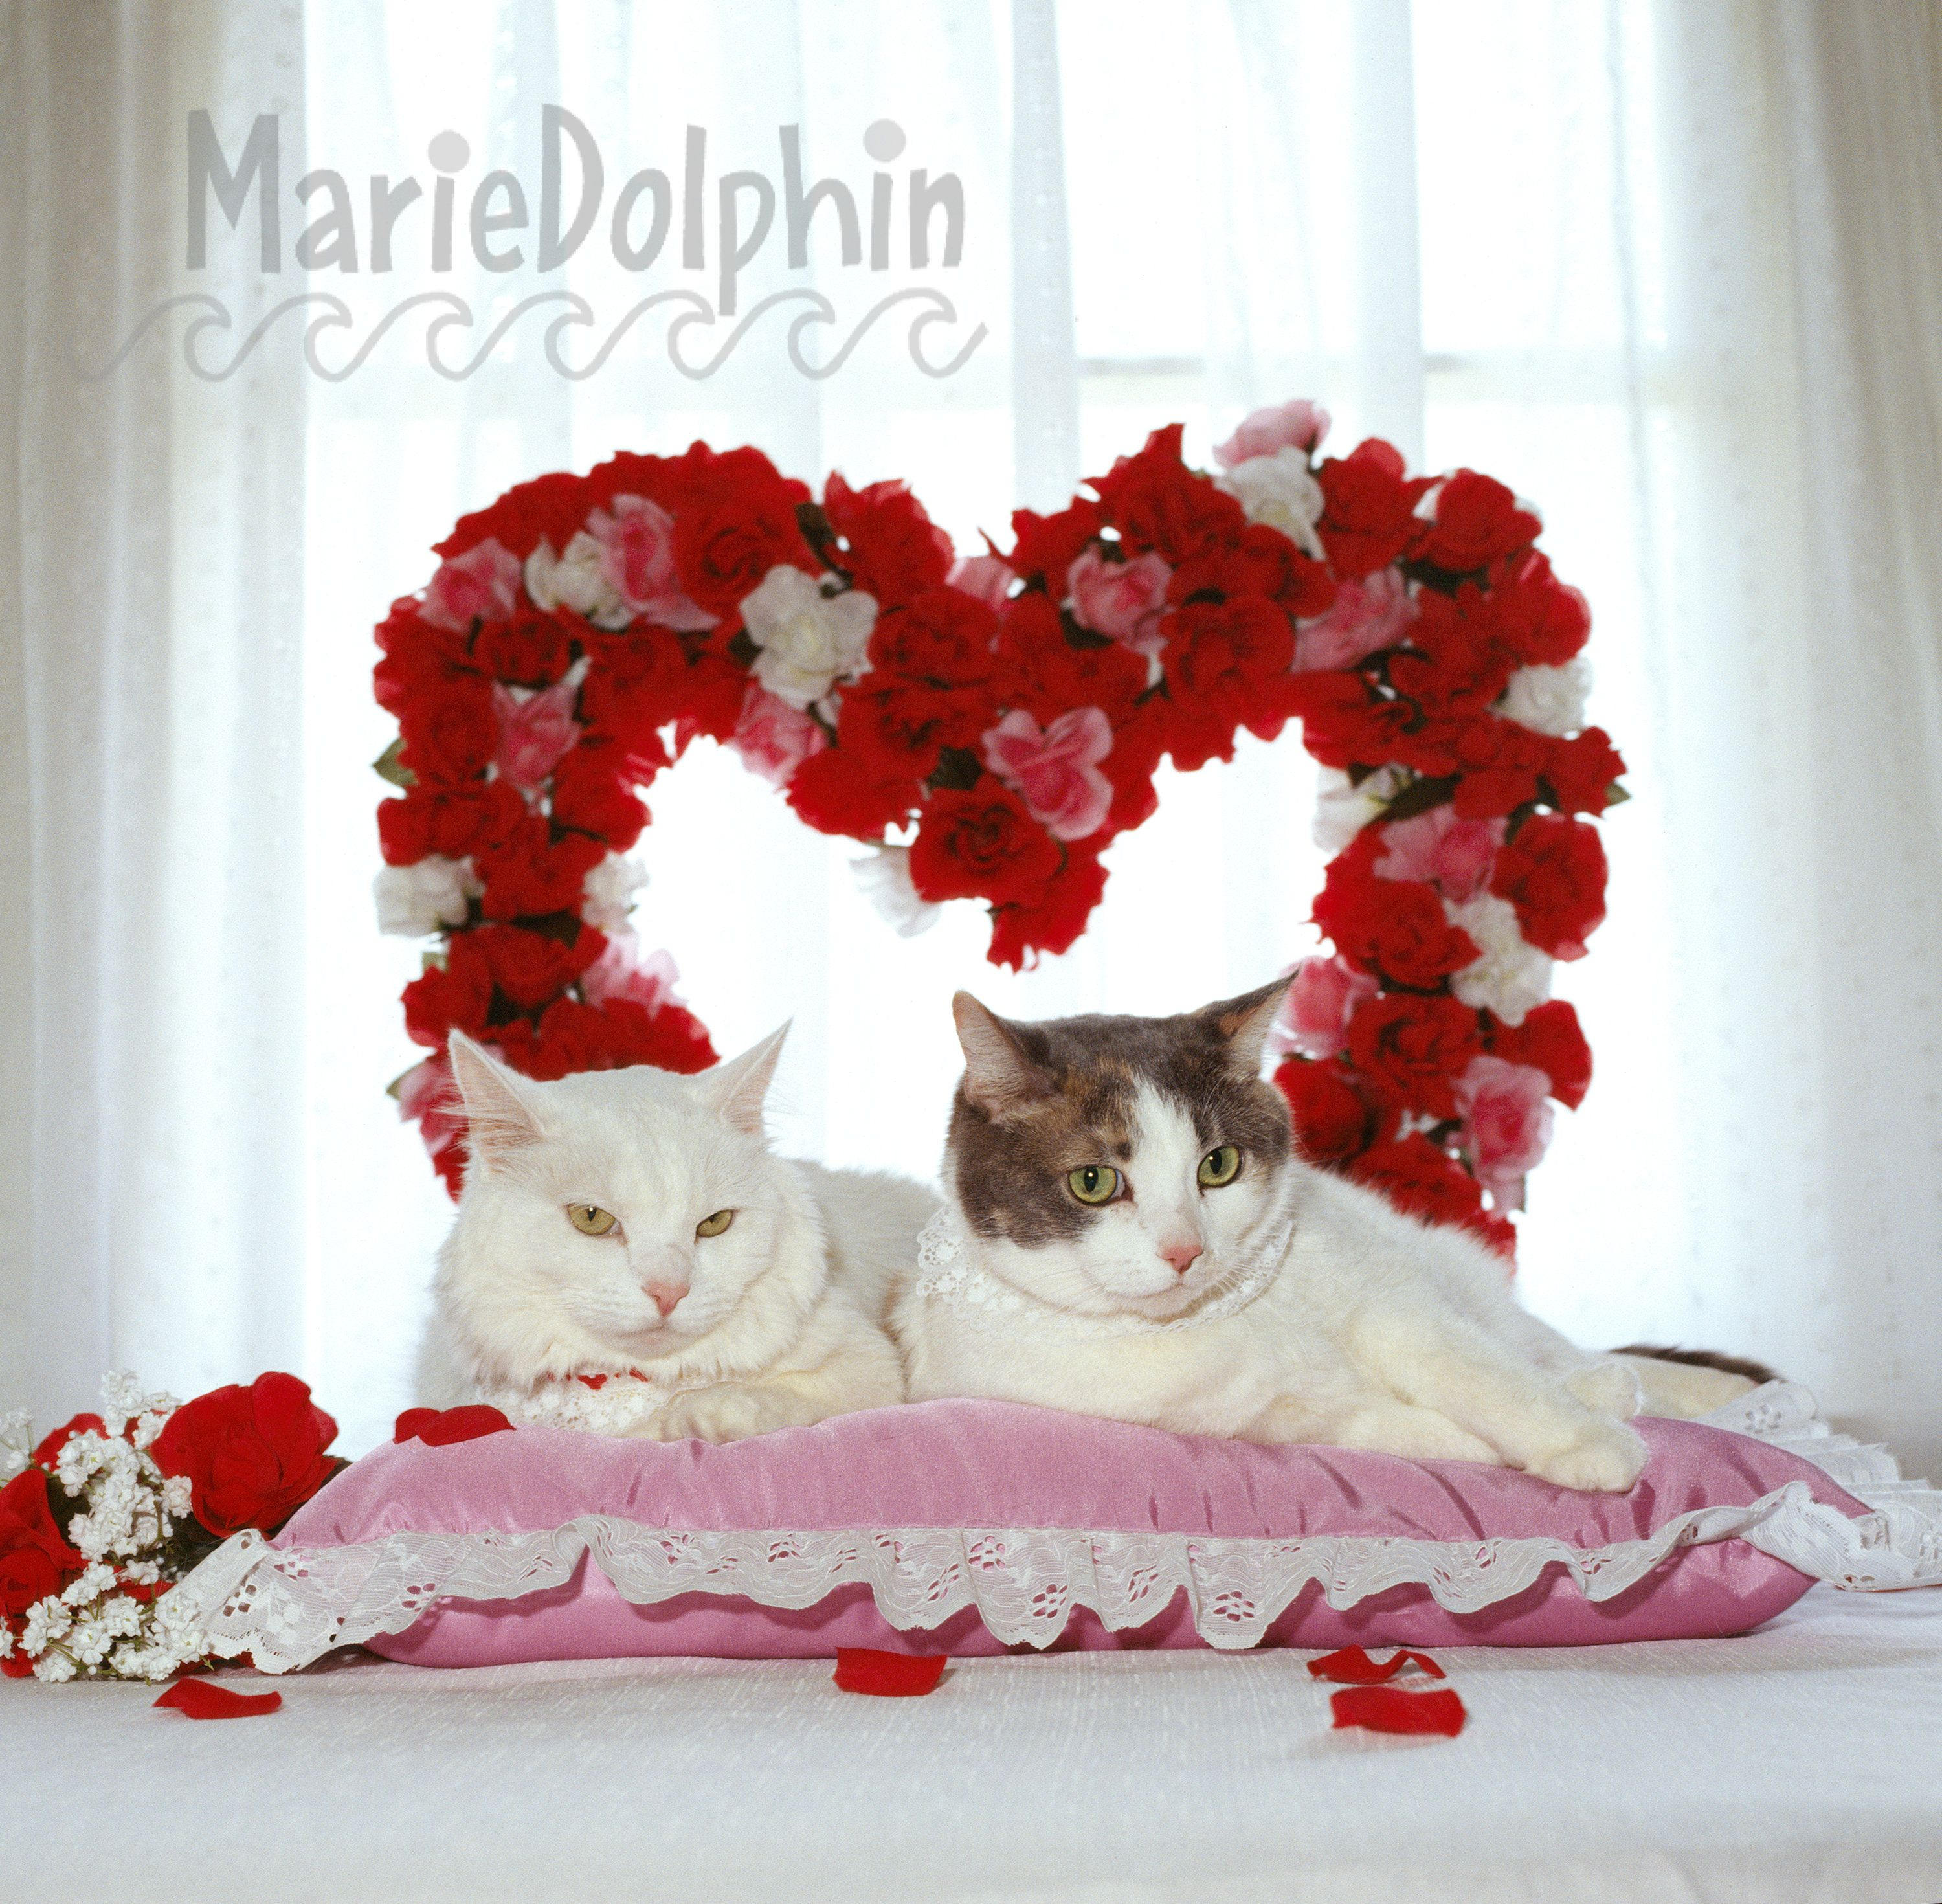 Vintage 1993 Valentines Photograph Used In My Calendar And Etsy In 2020 White Cats Animal Pound Pet Loss Dog